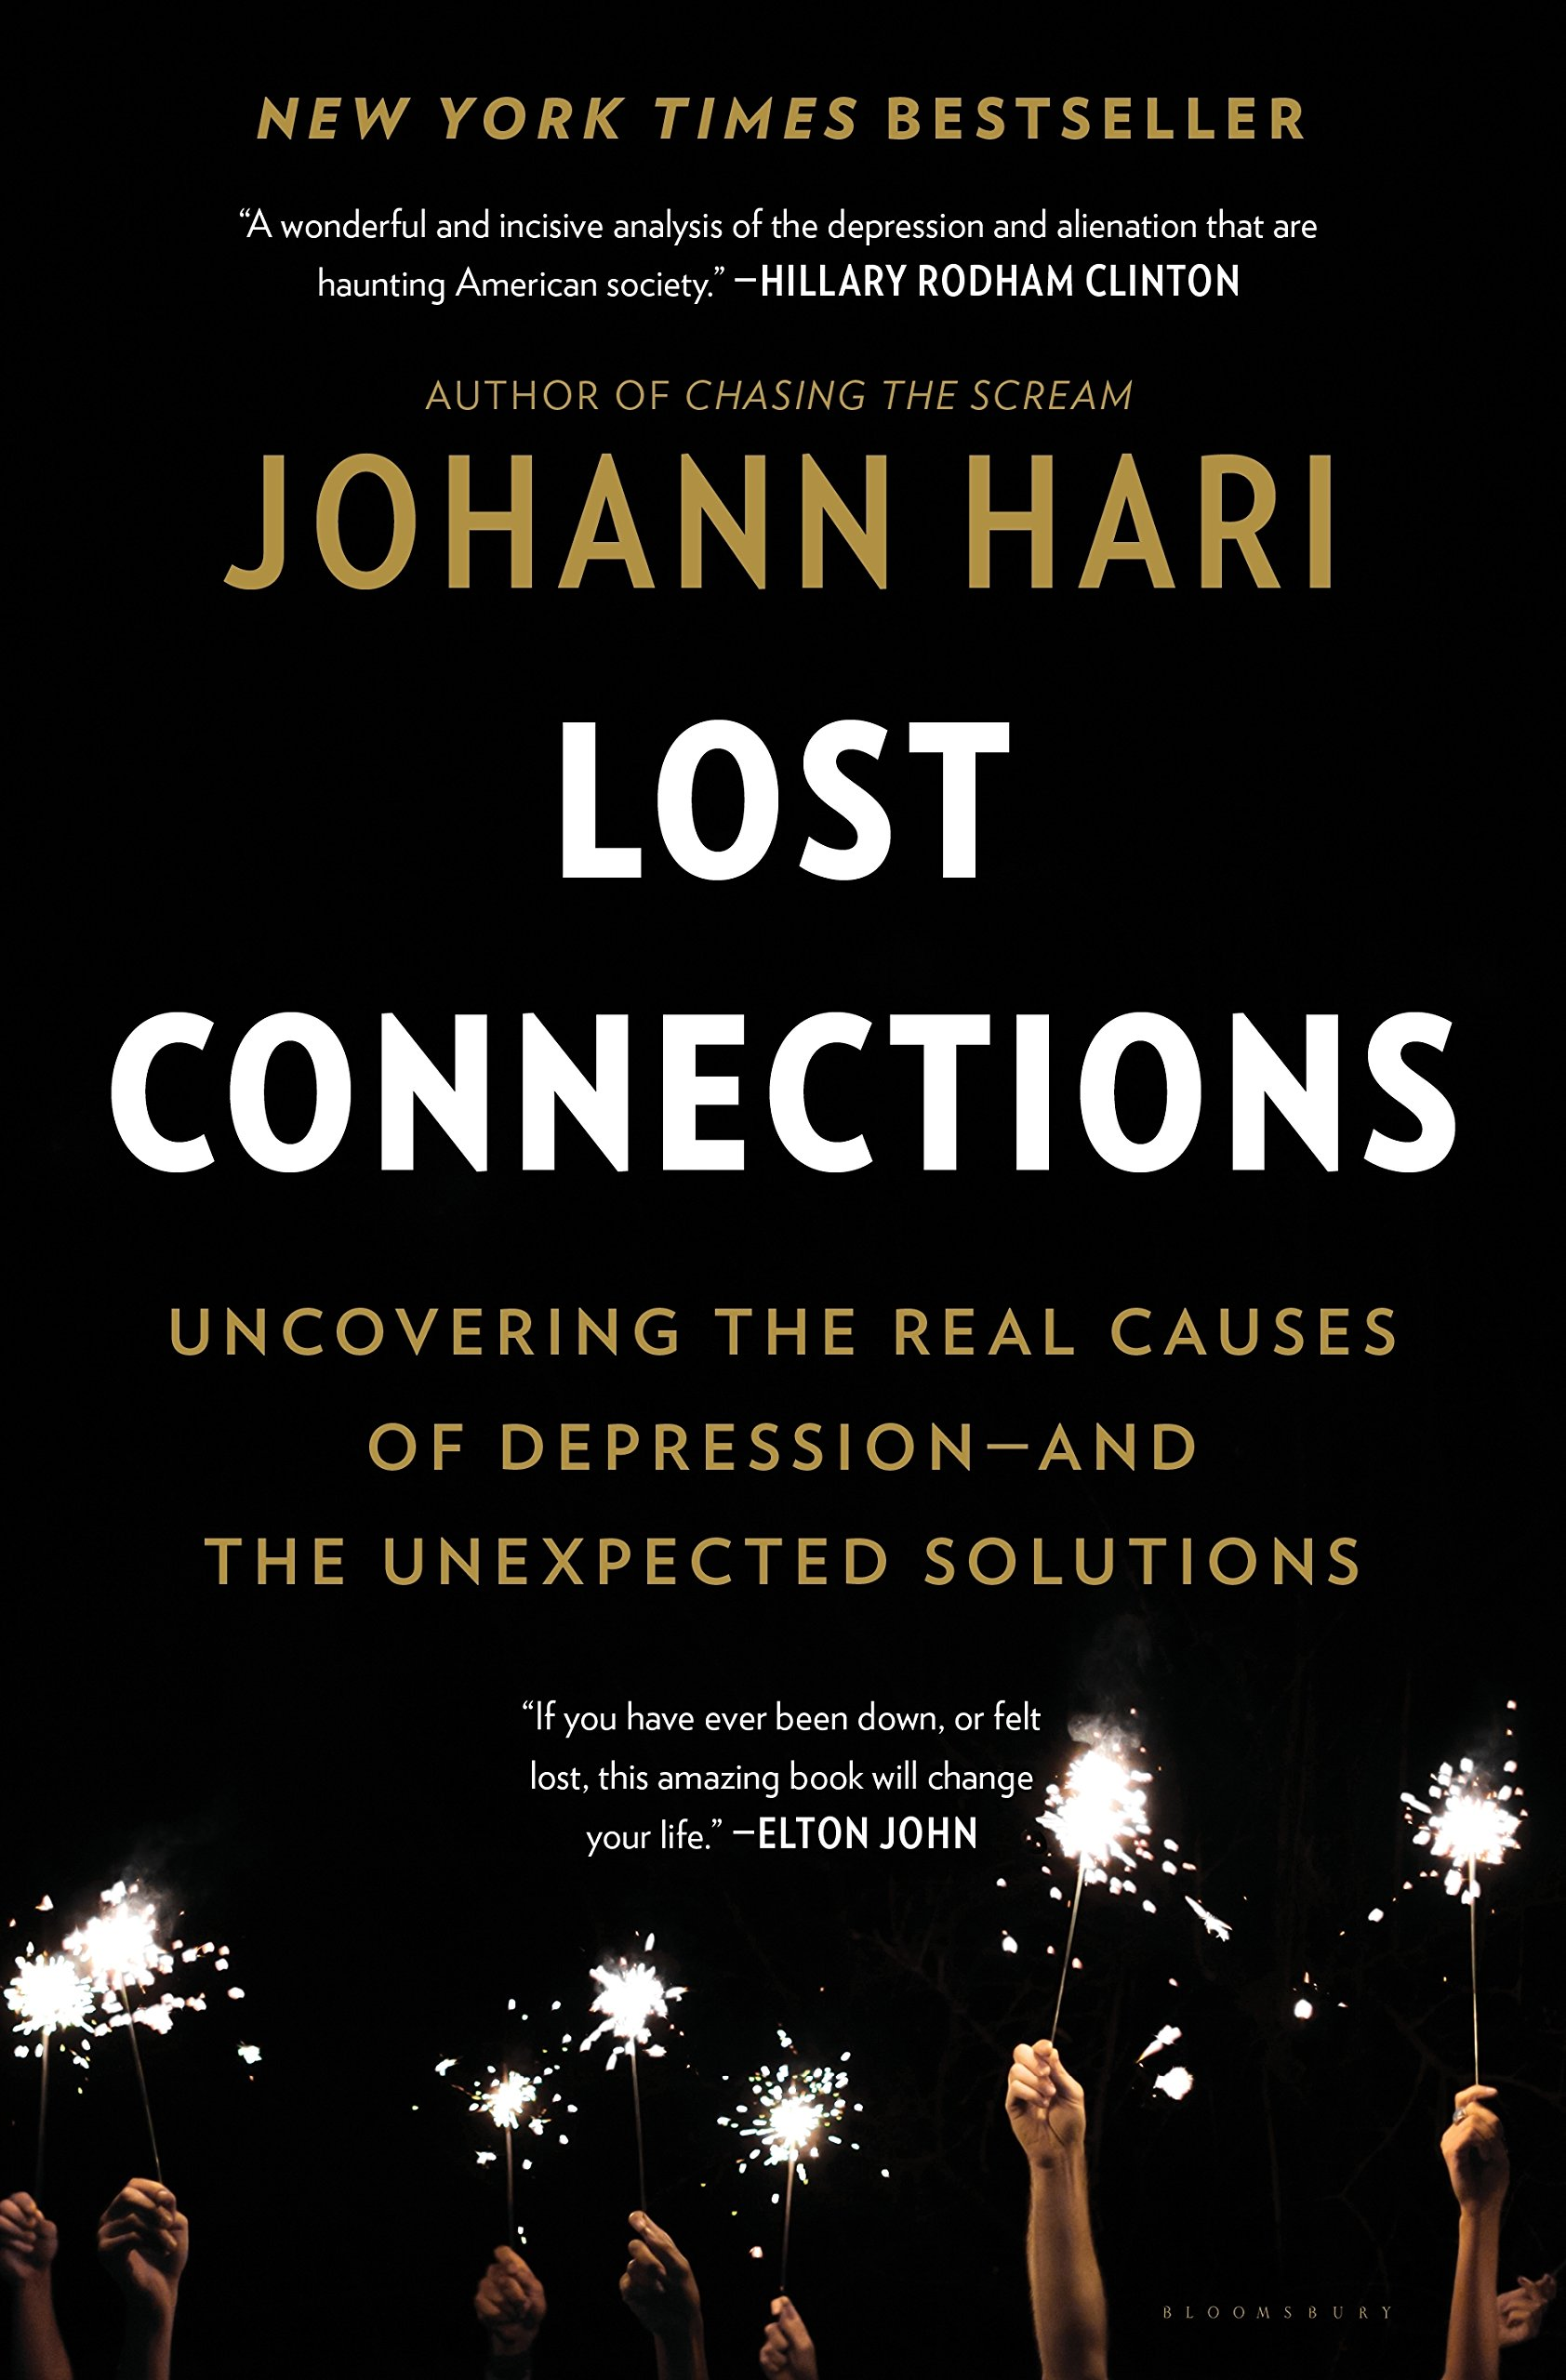 Lost connections uncovering the real causes of depression and the lost connections uncovering the real causes of depression and the unexpected solutions johann hari 9781632868305 amazon books fandeluxe Image collections